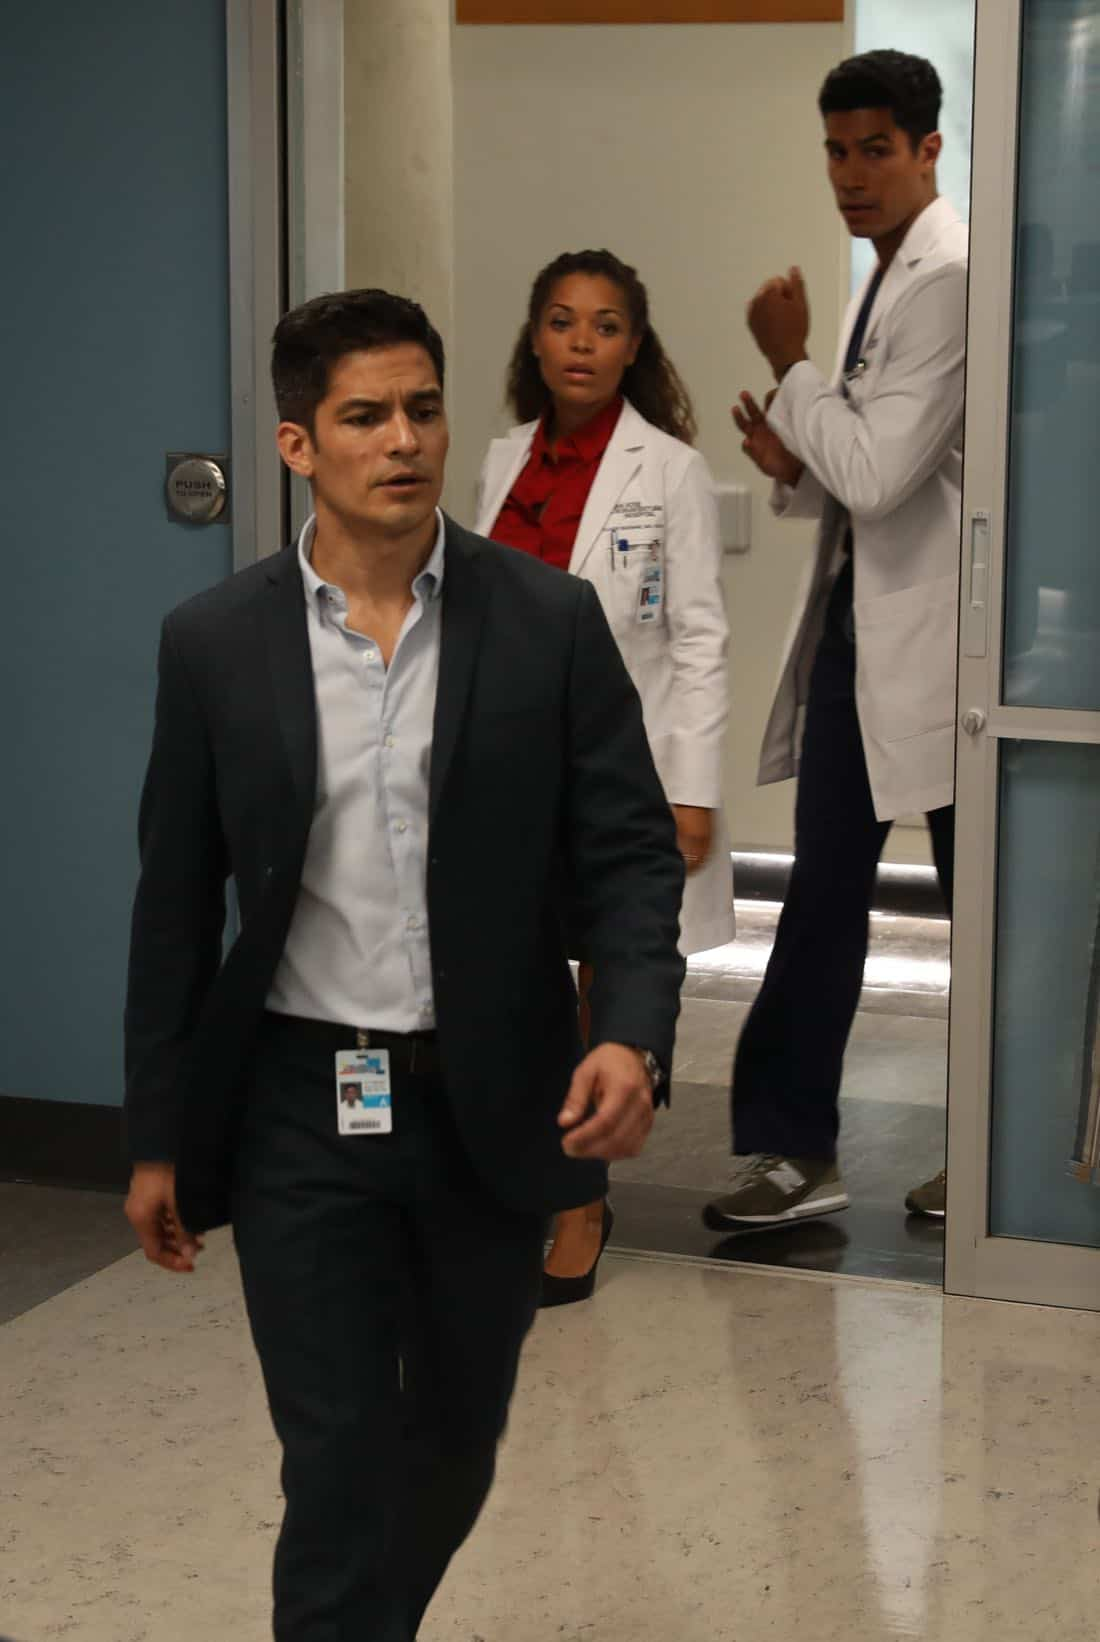 """THE GOOD DOCTOR - """"22 Steps"""" - Dr. Shaun Murphy has to confront prejudice from an unlikely source when he takes on the case of a patient with autism, and Dr. Jared Kalu has to learn to accept his limitations as a surgeon. """"The Good Doctor"""" airs MONDAY, NOV. 13 (10:01-11:00 p.m. EST), on The ABC Television Network. (ABC/Jack Rowand) NICHOLAS GONZALEZ, ANTONIA THOMAS, CHUKUMA MODU"""